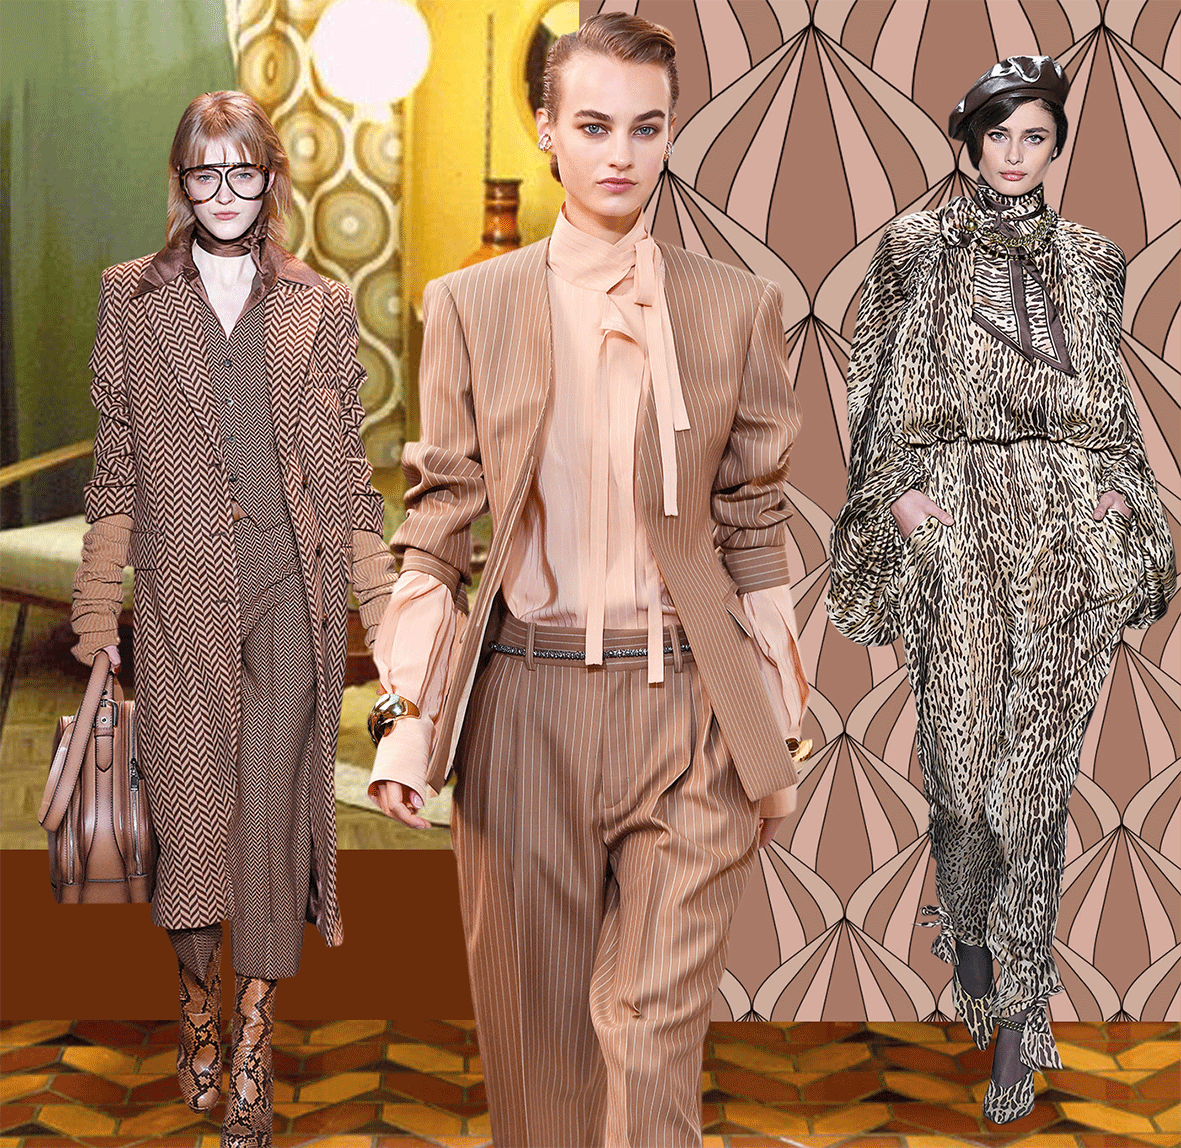 Mode in der Trendfarbe Vintage Brown